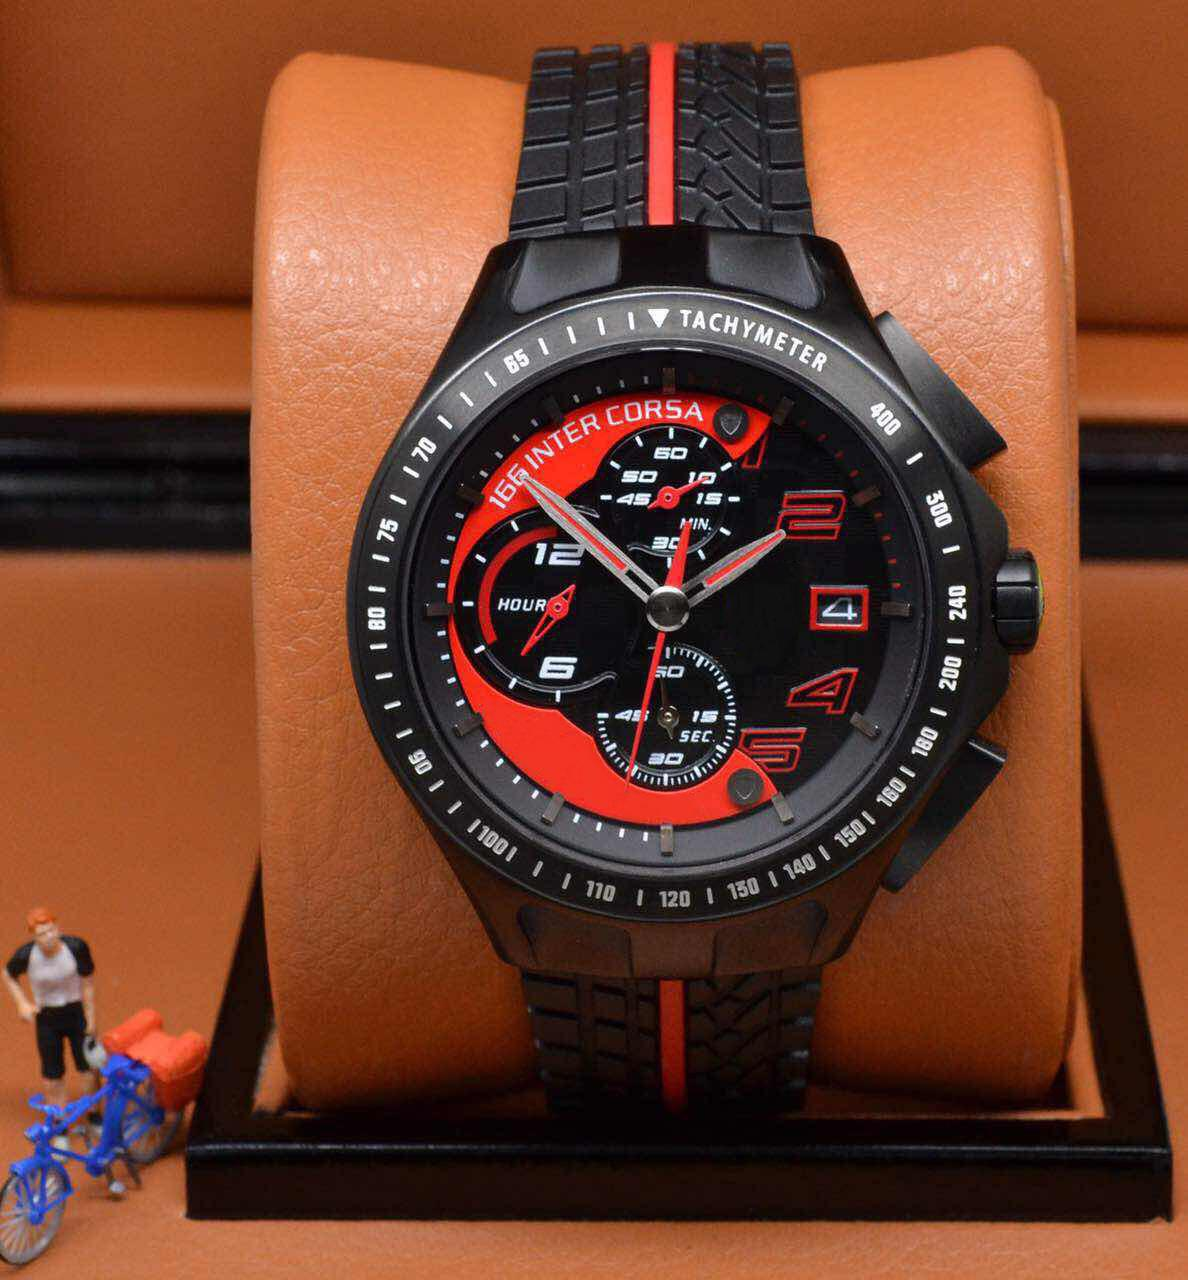 luxury new mens best 166 inter corsa chronograph quartz sports luxury new mens best 166 inter corsa chronograph quartz sports watch black red casual black two